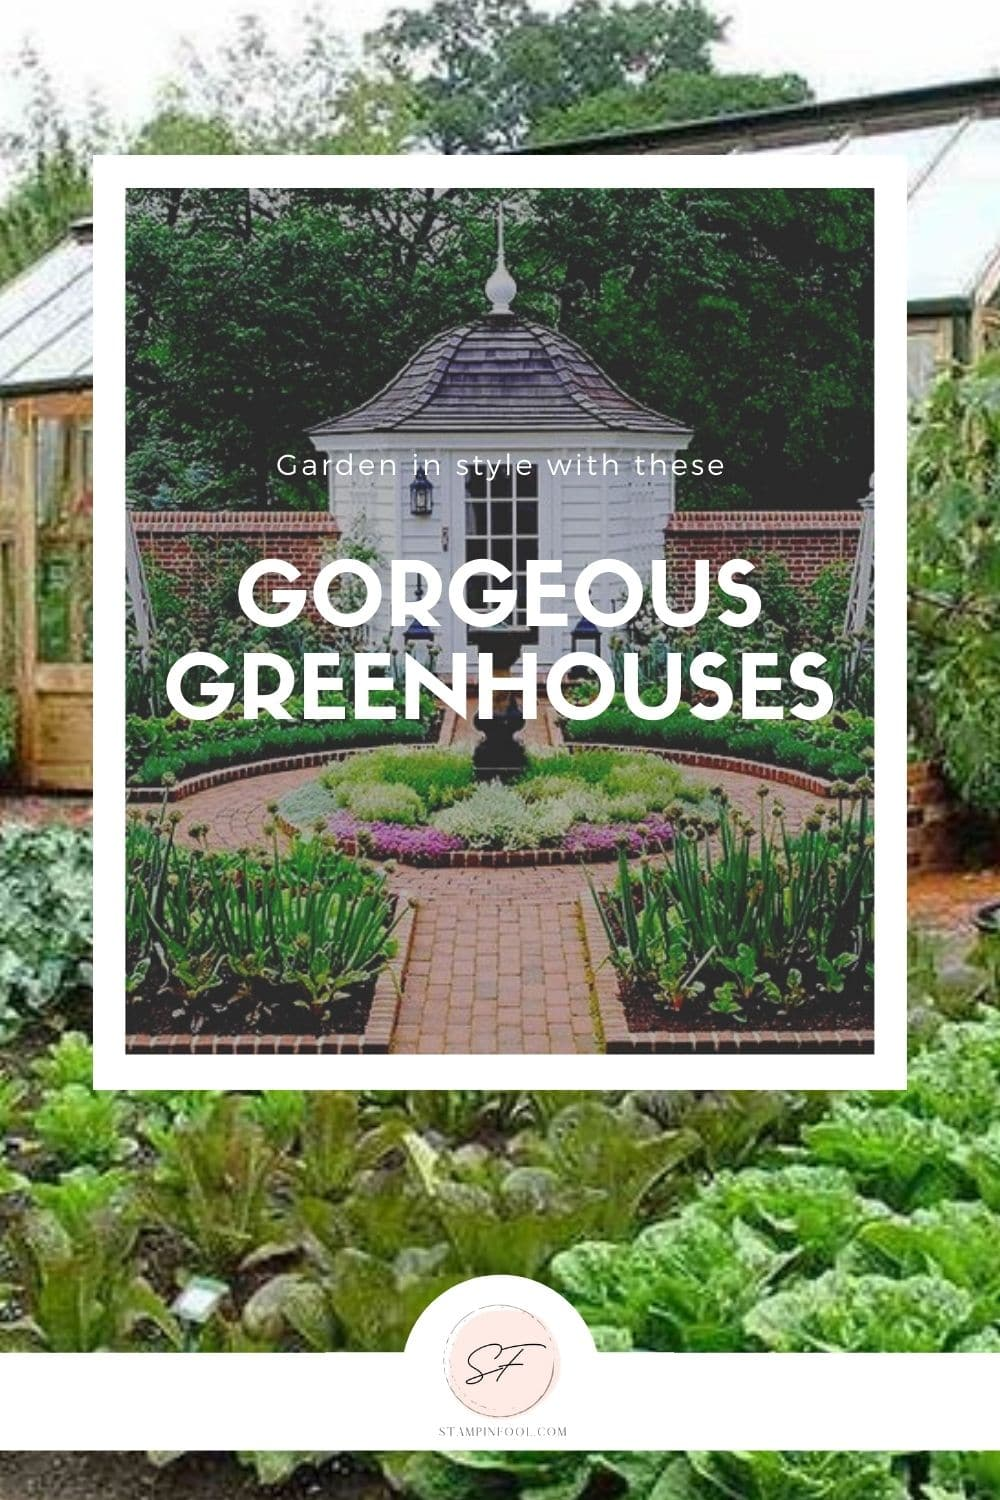 GREENHOUSES: HOW TO CREATE A GORGEOUS BACKYARD INSTANTLY